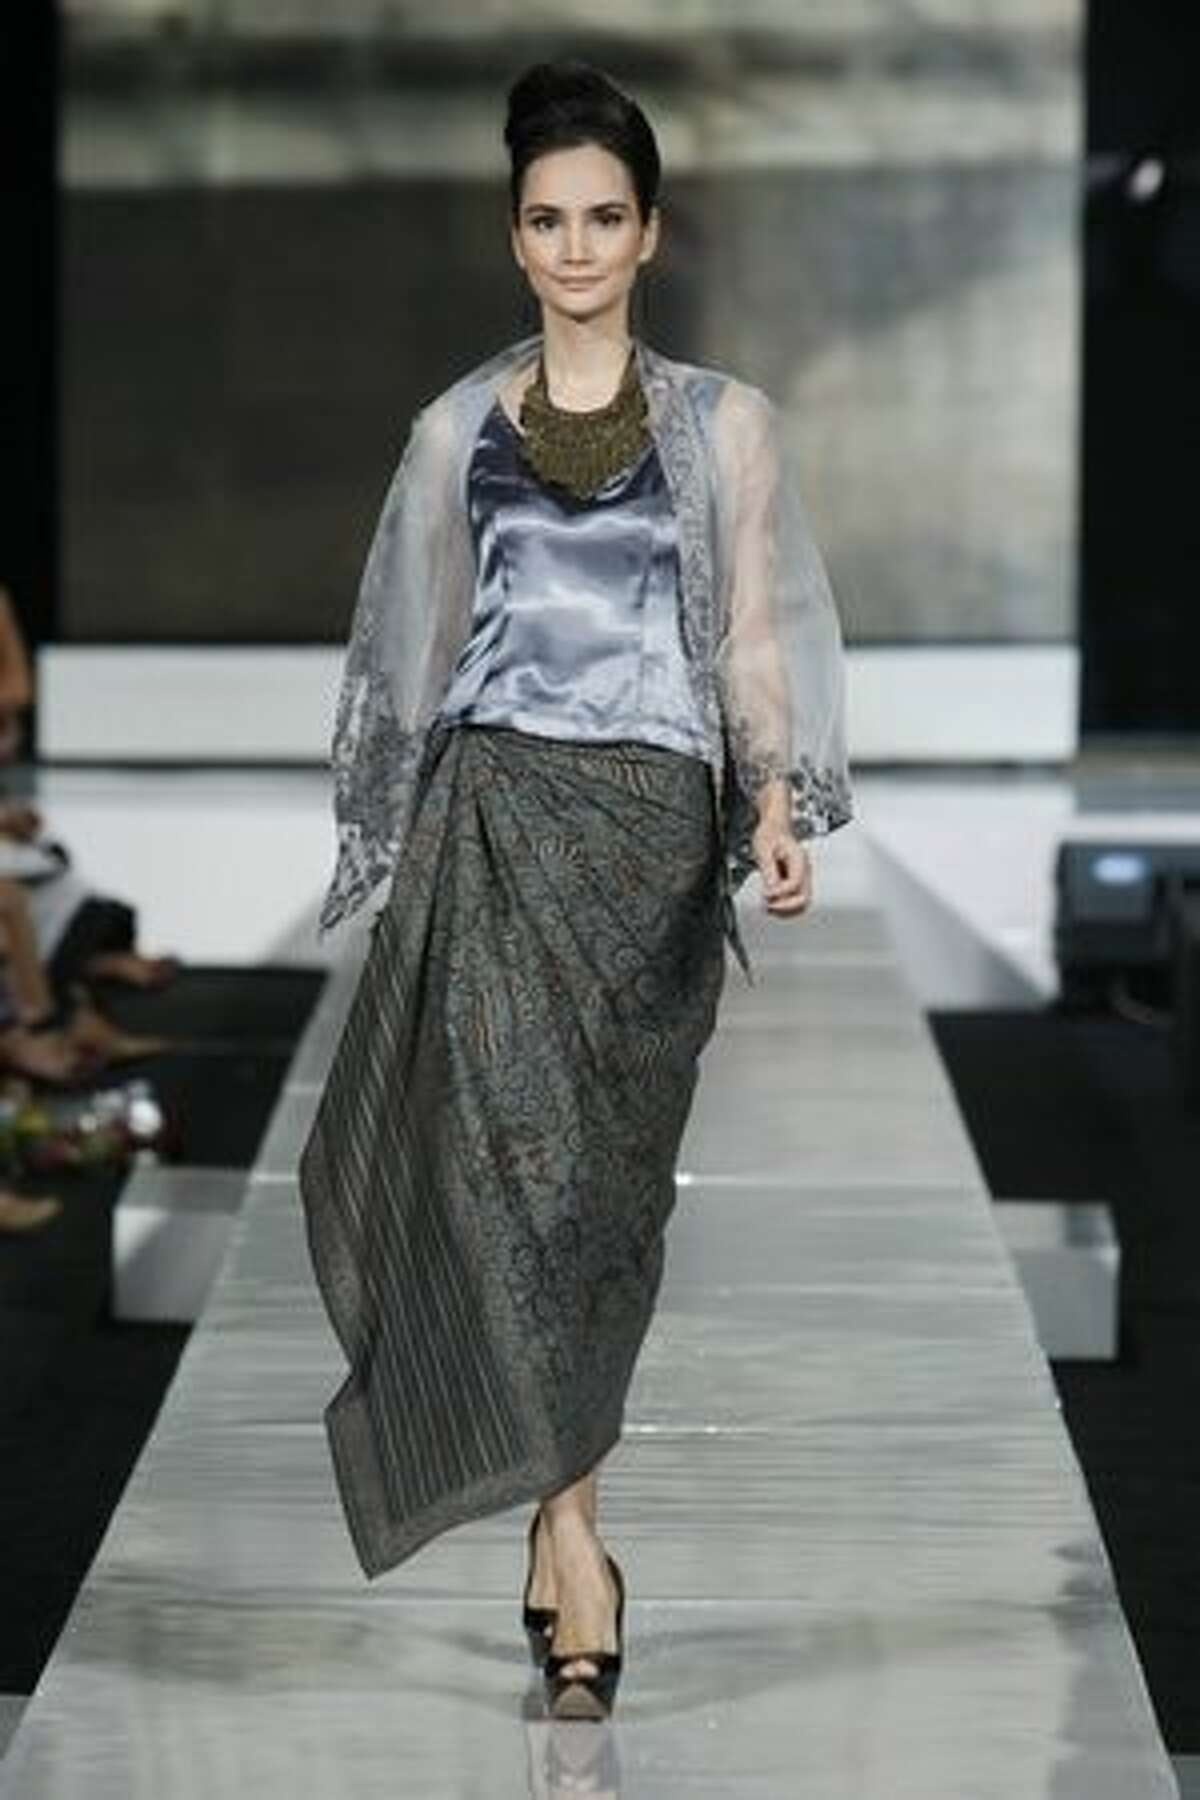 A model showcases designs on the runway by Inez Mardiana during the DEKRANASDA show on the second day of Jakarta Fashion Week 2010 in Jakarta, Indonesia.